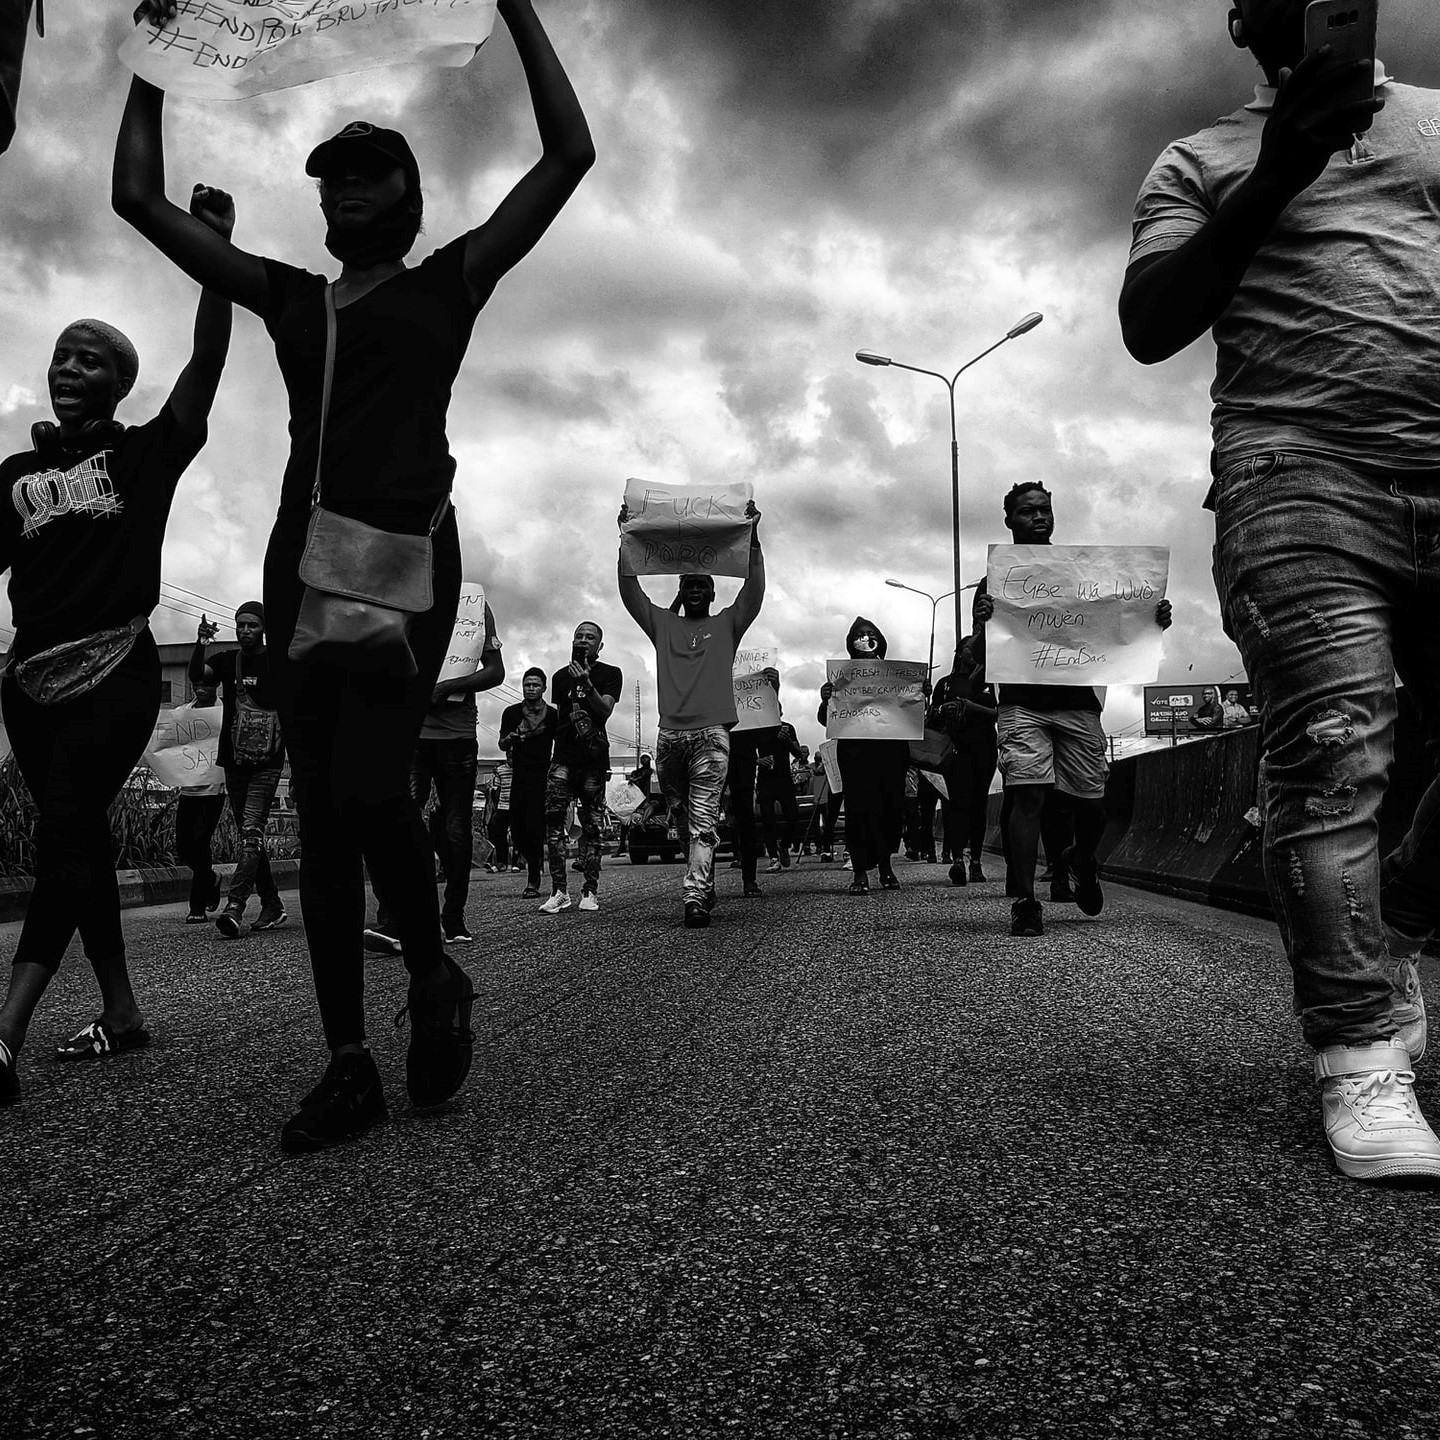 Young People, Protest, and Policy: A 21st Century Model of Social Change